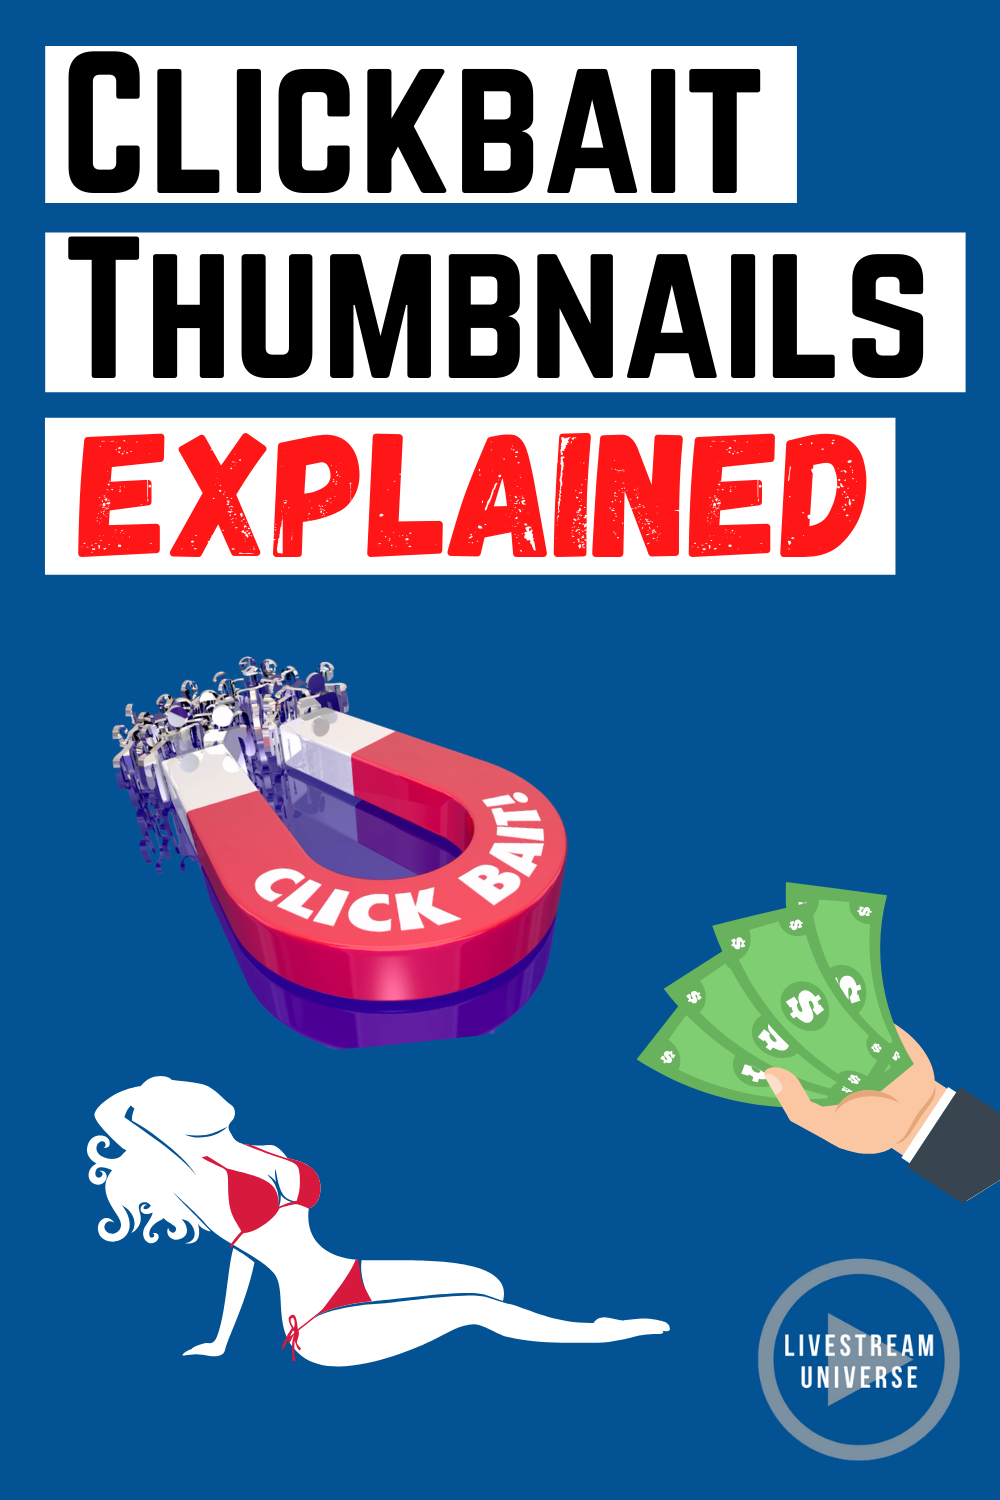 Are Your Thumbnails Clickbait Live Streaming Youtube Universe